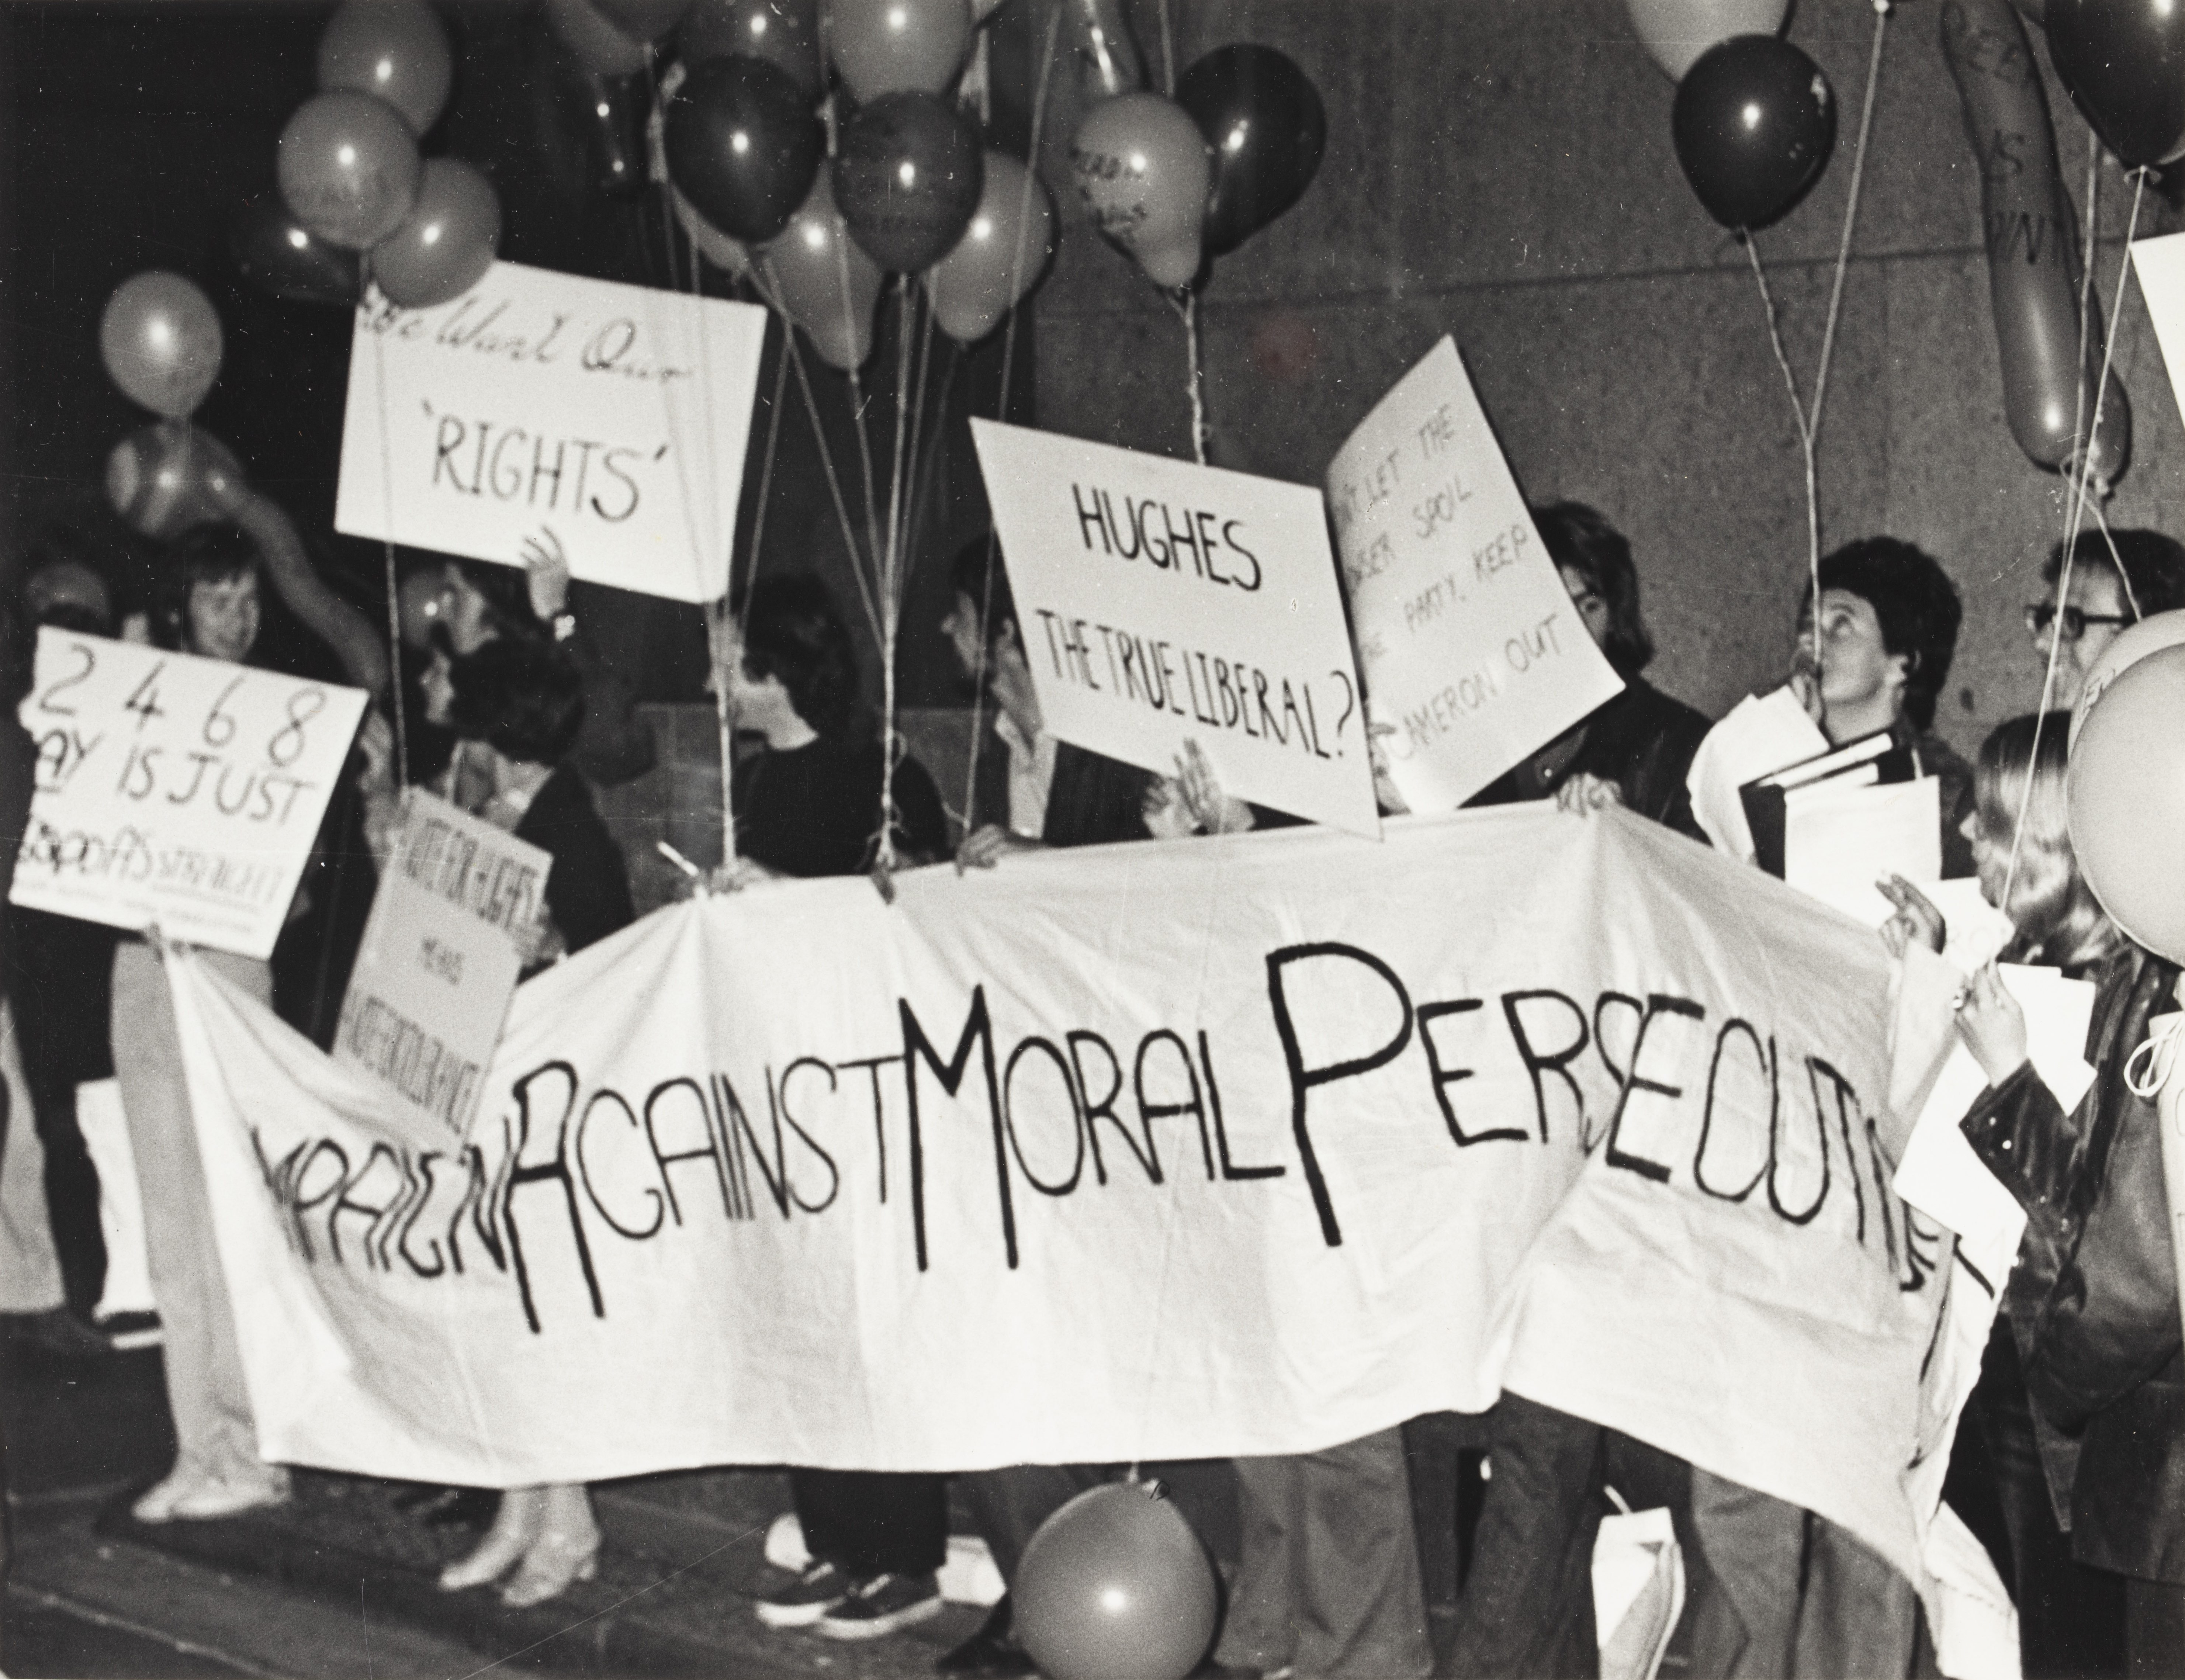 Banner: 'Campaign Against Moral Persecution' & balloons, CAMP Inc. demonstration outside NSW Liberal Party Headquarters, Ash St, Sydney.